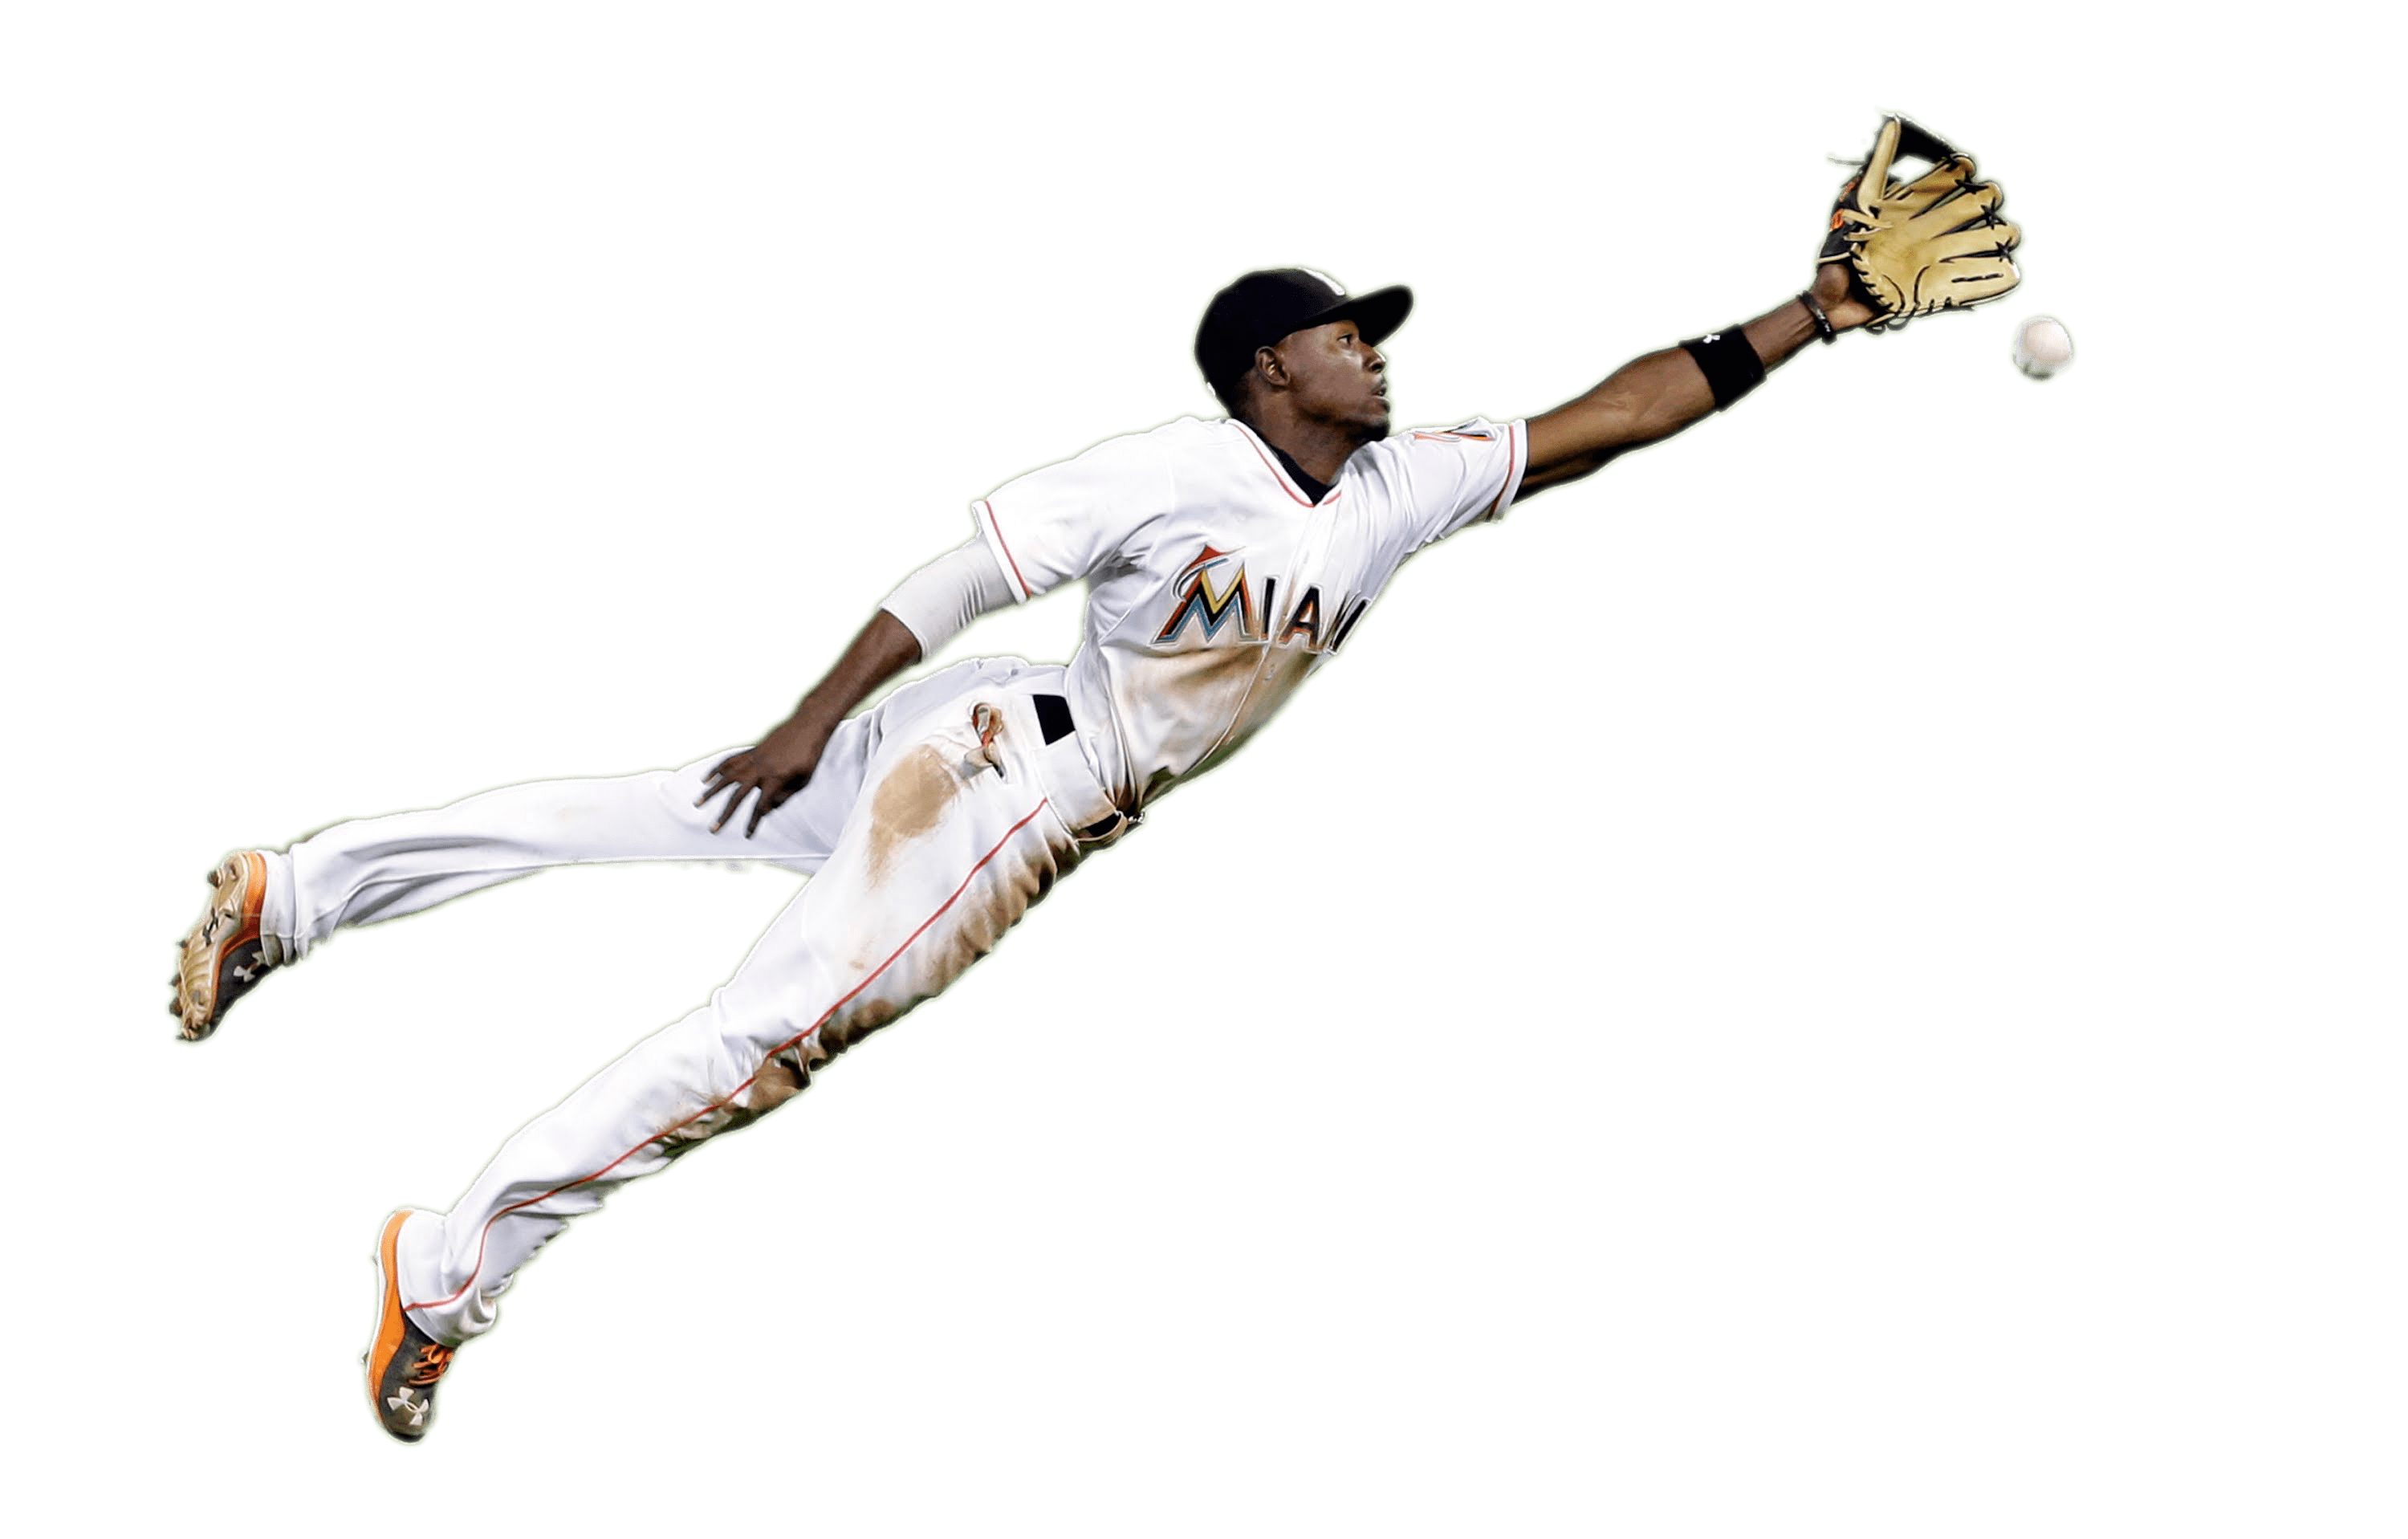 Baseball player throwing clipart image library download Baseball PNG Transparent Images (63+) image library download